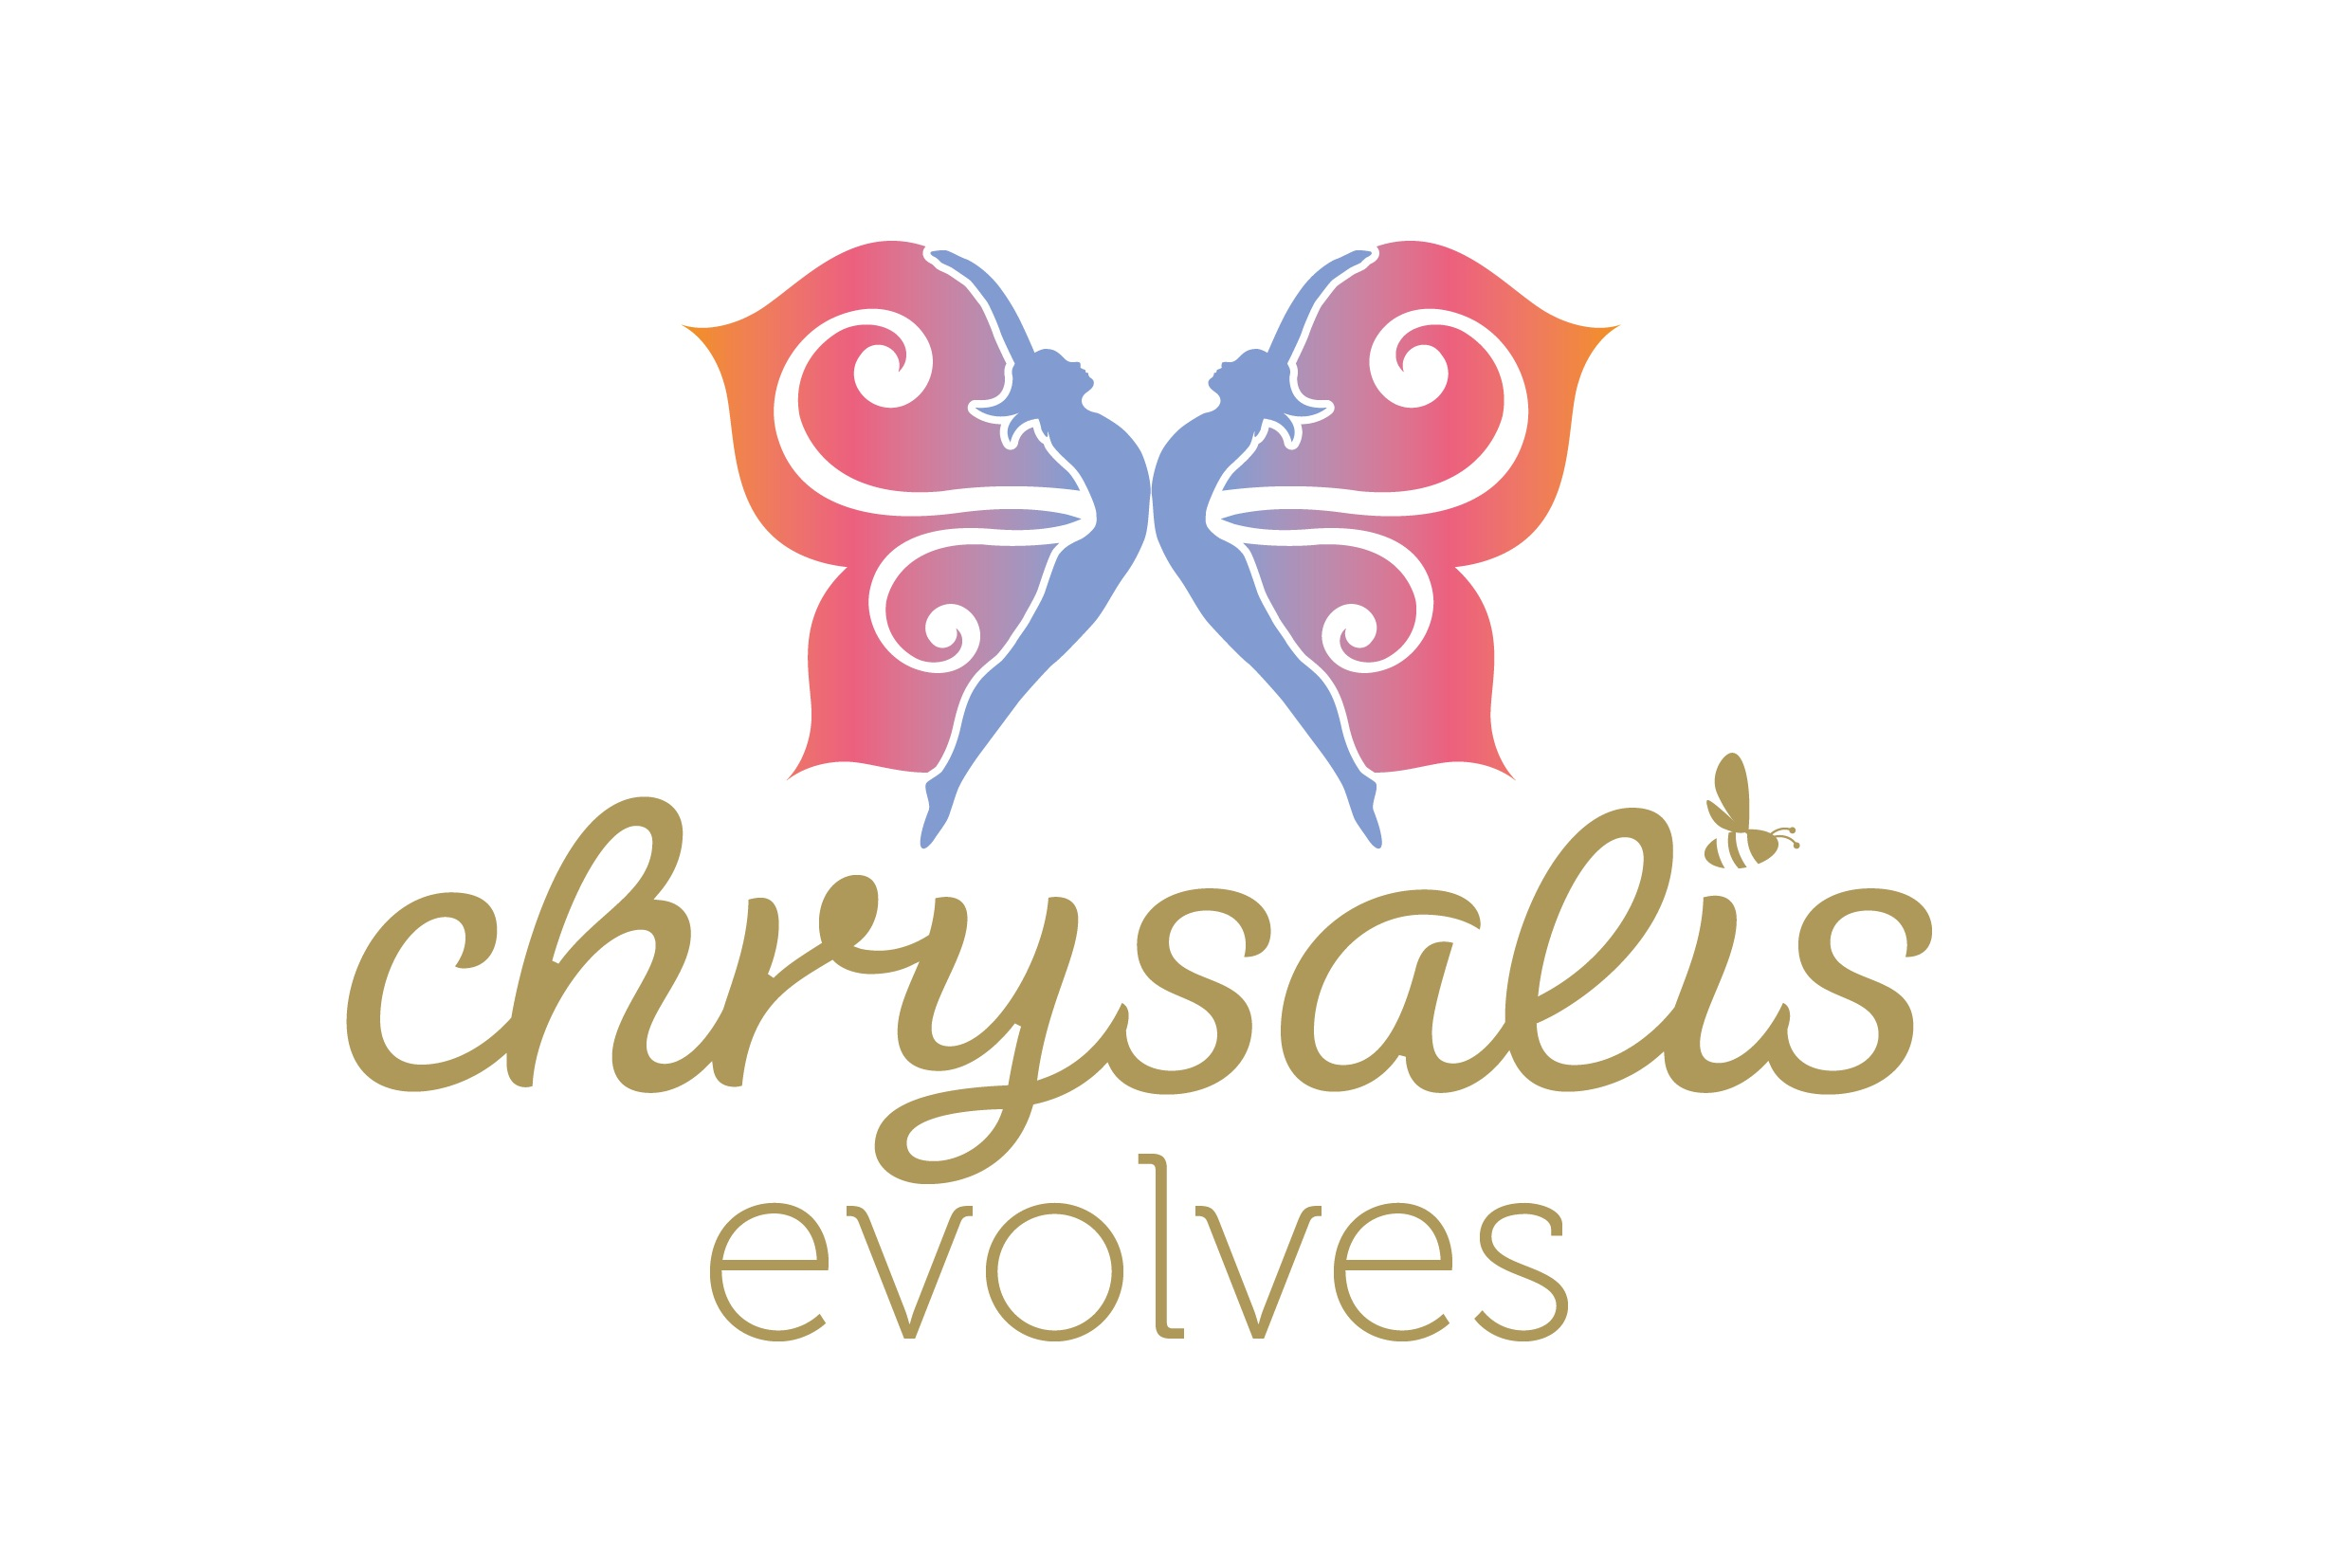 PH_Chrysalis_Evolves_Logo_CMYK-01.jpg